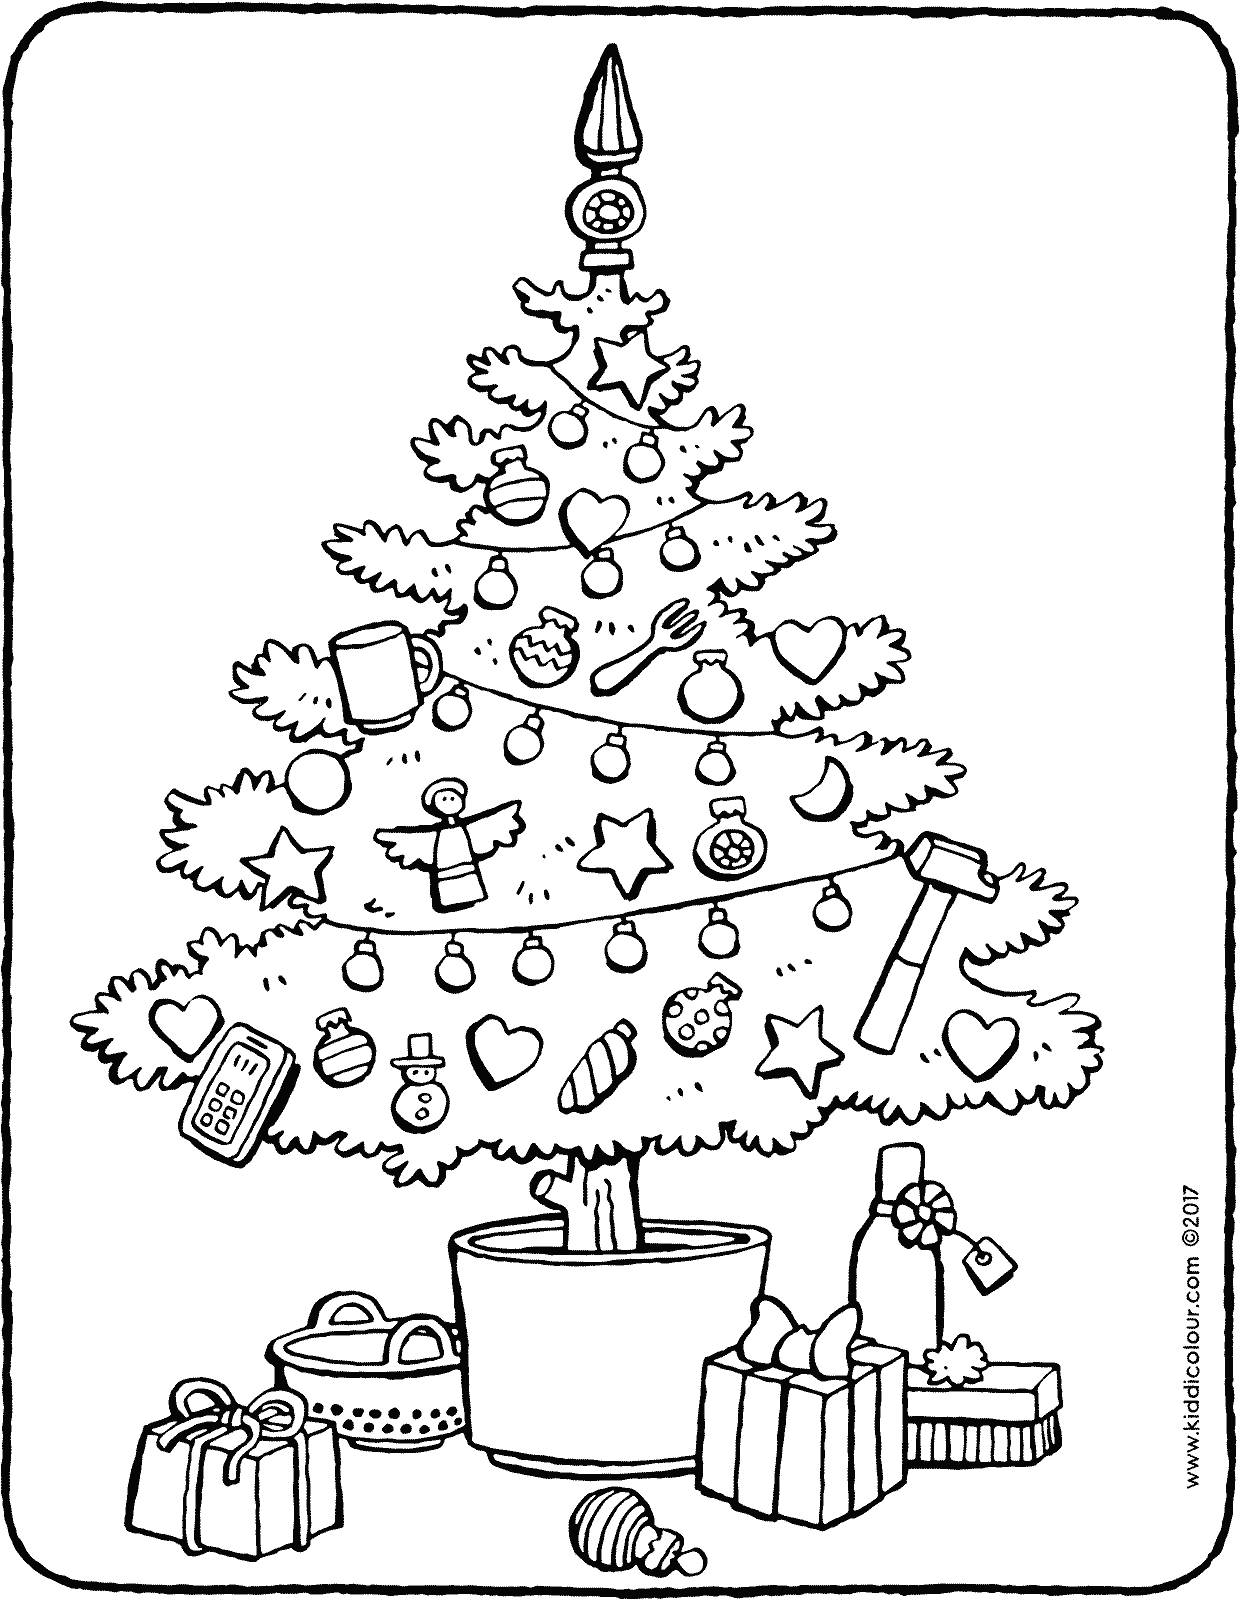 which objects don't belong in the christmas tree  kiddicolour